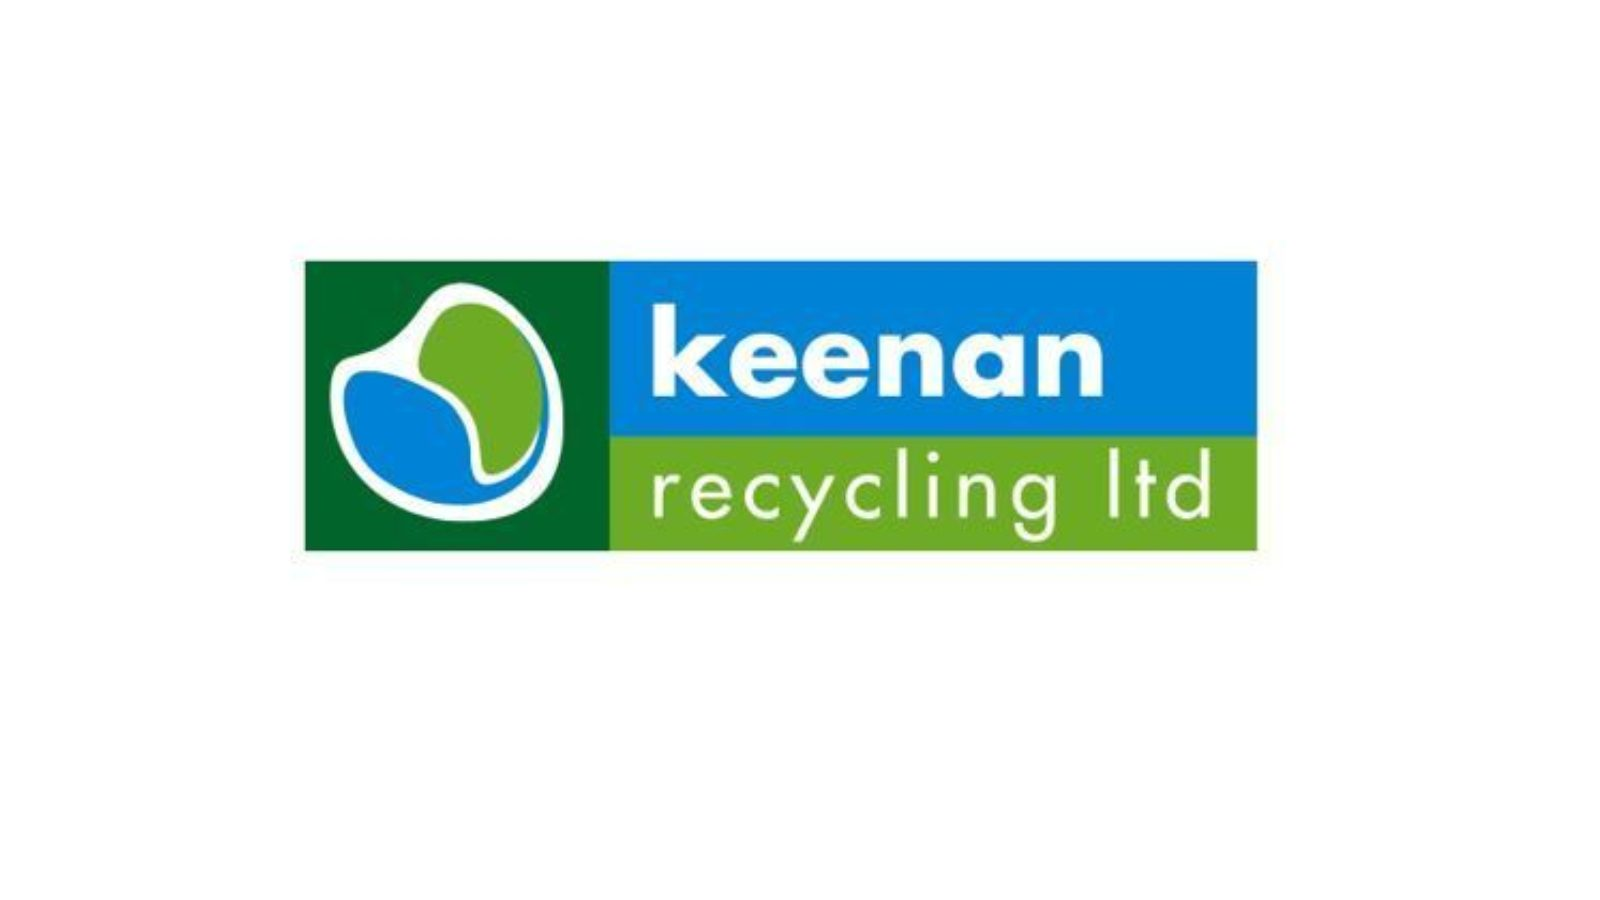 Keenan Recycling Ltd: extracting economic and environmental value